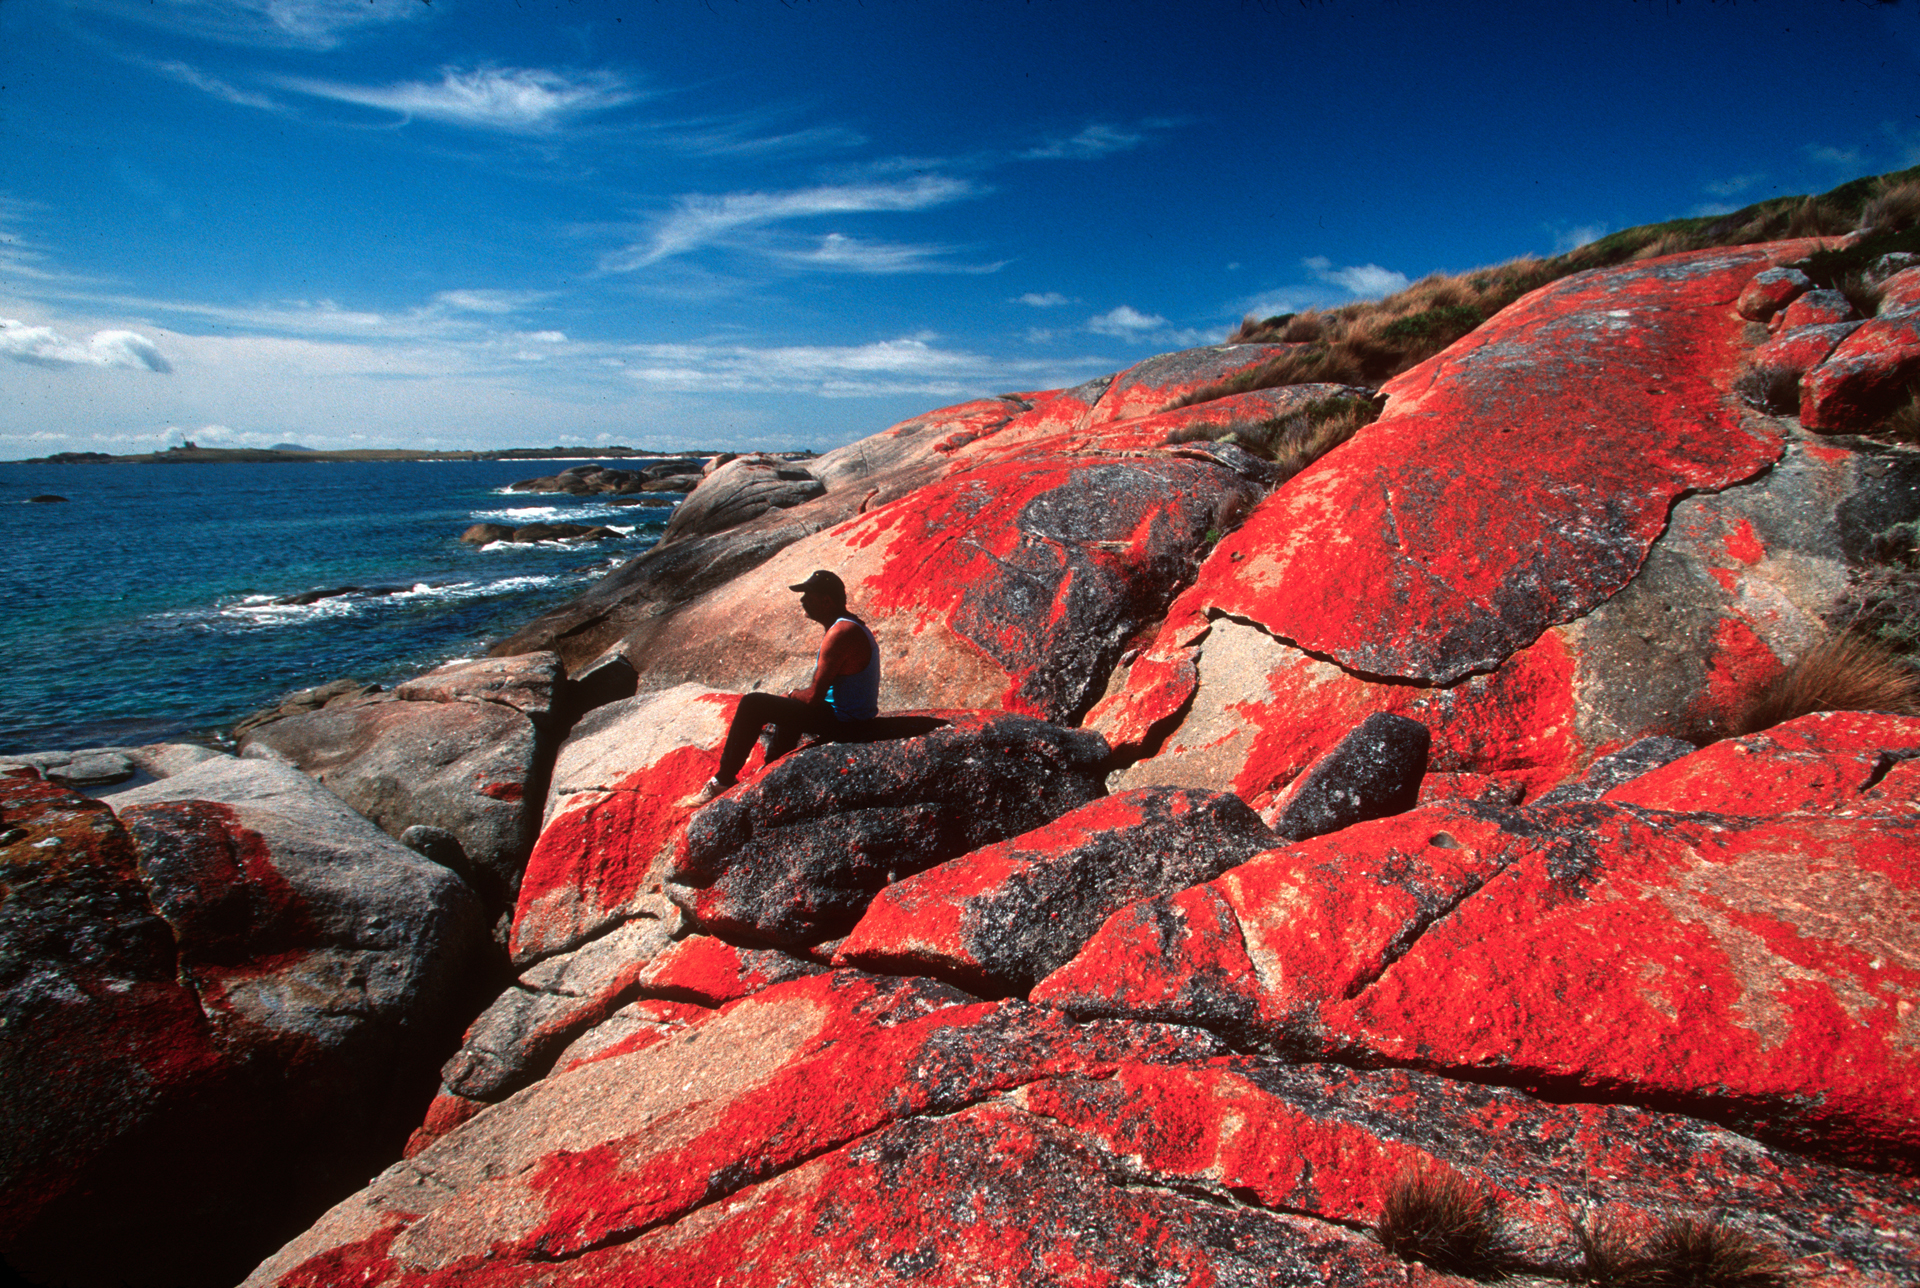 An aborigine inhabitant of 'The Corner' relaxes on a coastal rock covered by blooming lichen.  Cape Barren Island